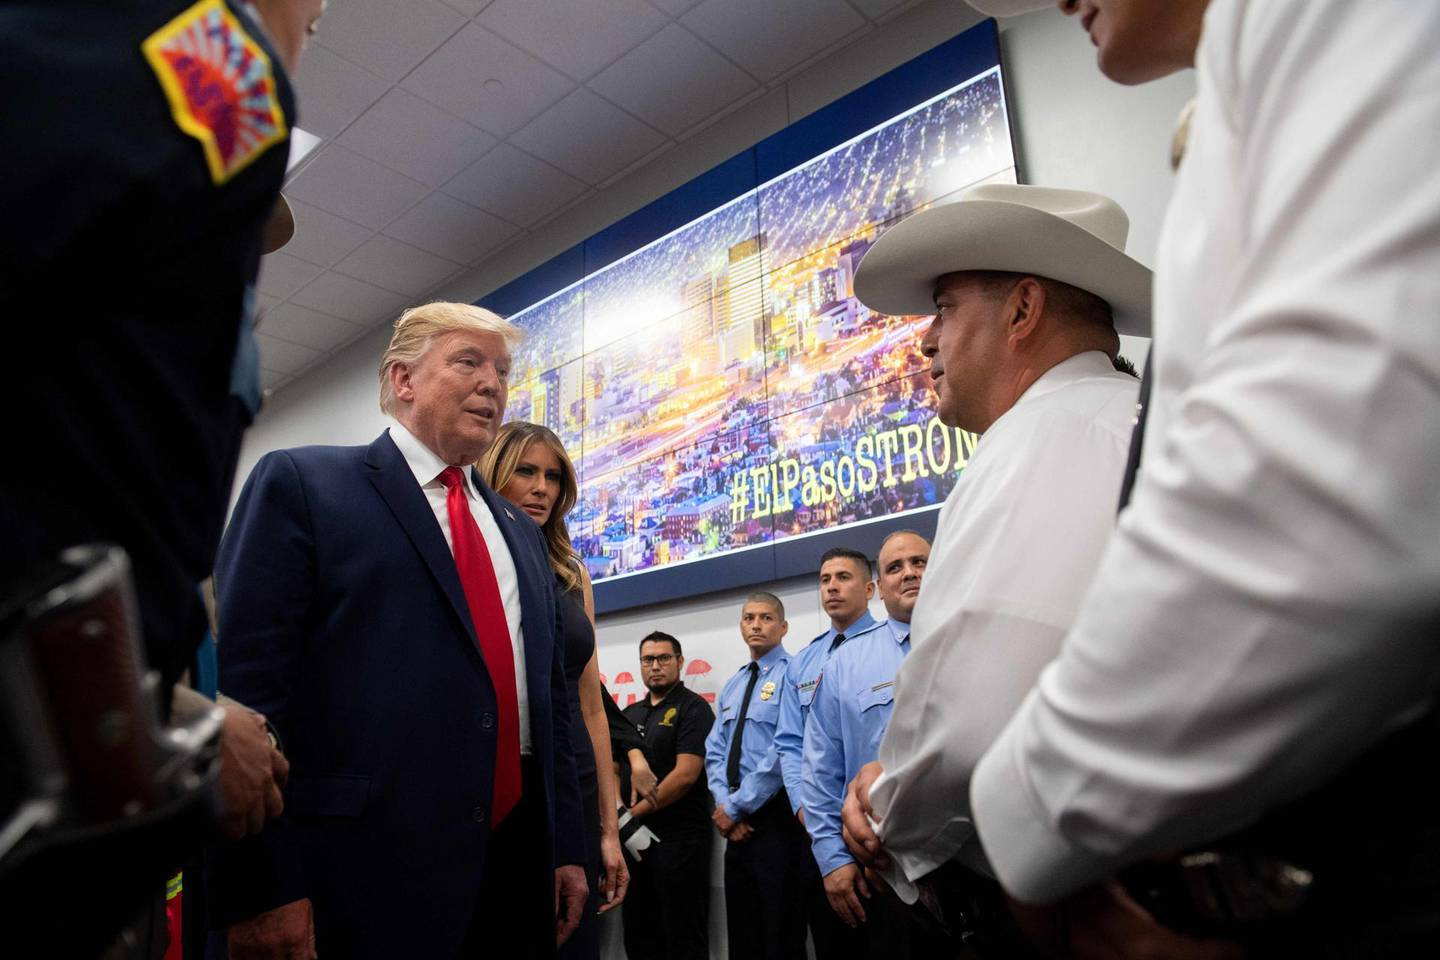 US President Donald Trump and First Lady Melania Trump visit an Emergency Operations Center in El Paso, Texas, August 7, 2019, following last weekend's mass shootings. / AFP / SAUL LOEB